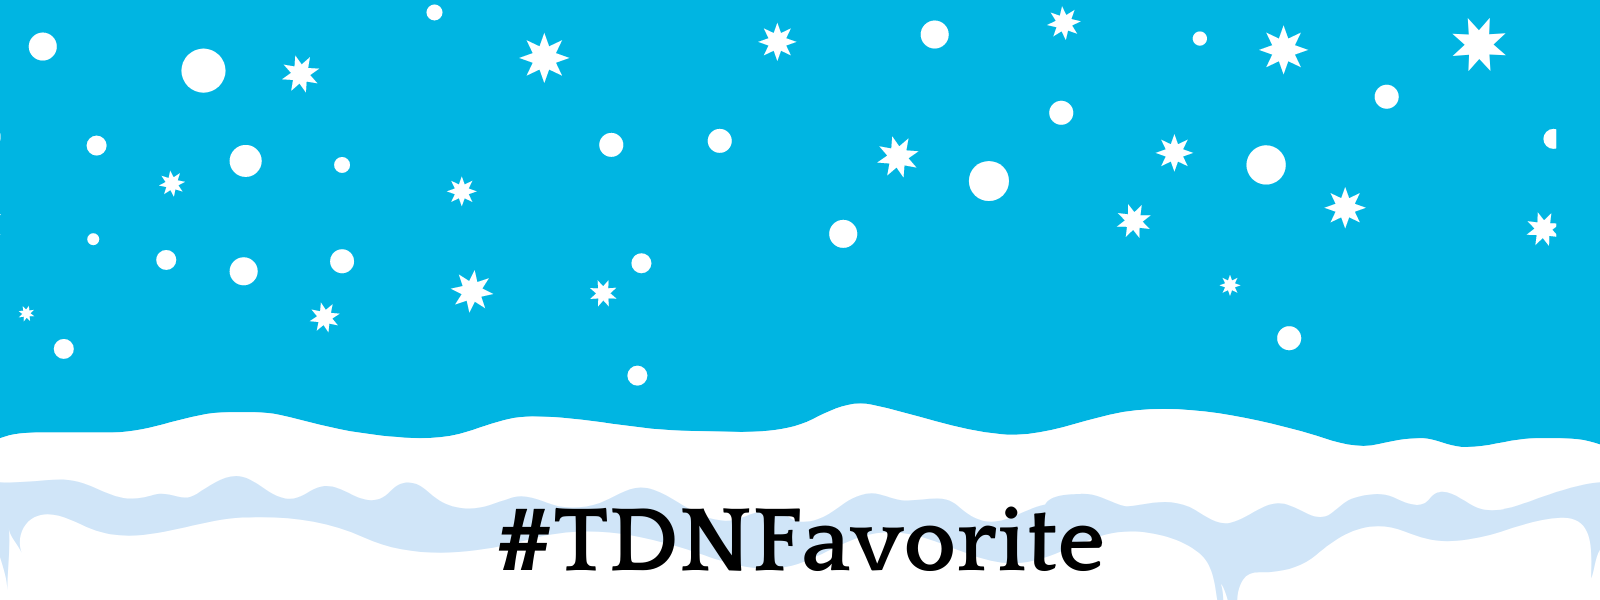 Graphic of snow falling onto the ground on a blue background. There is a hashtag at the bottom: #TDNFavorite